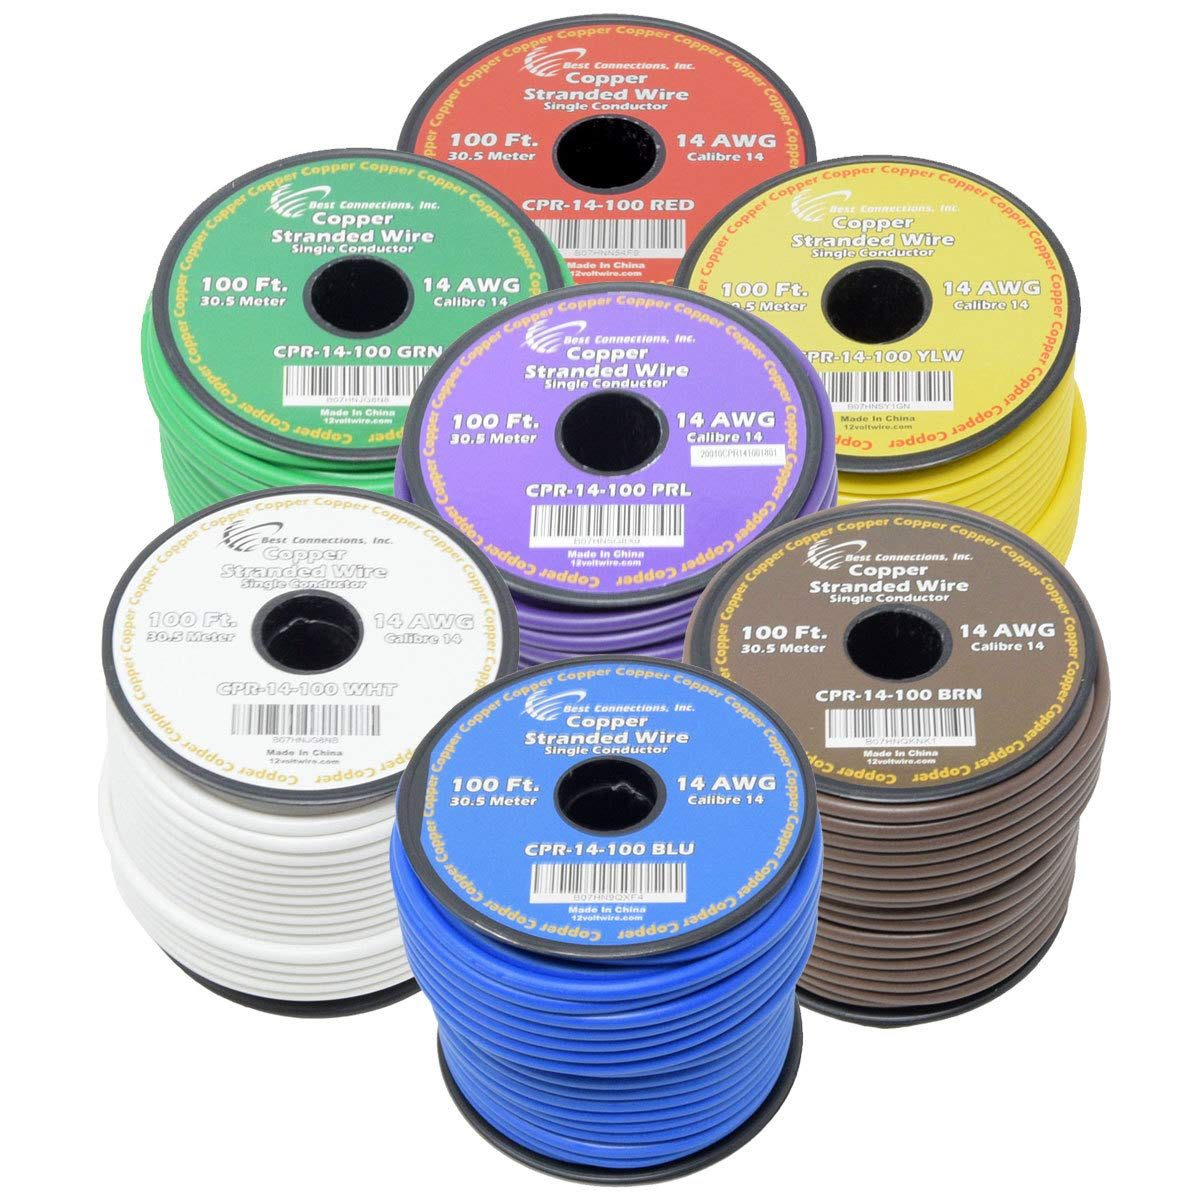 Best Connections 14 AWG Pure Copper Stranded 7-Way Trailer Wire - 7 Rolls 100' Each True Gauge Power Ground Remote Primary Hook-Up Cable 12-Volt